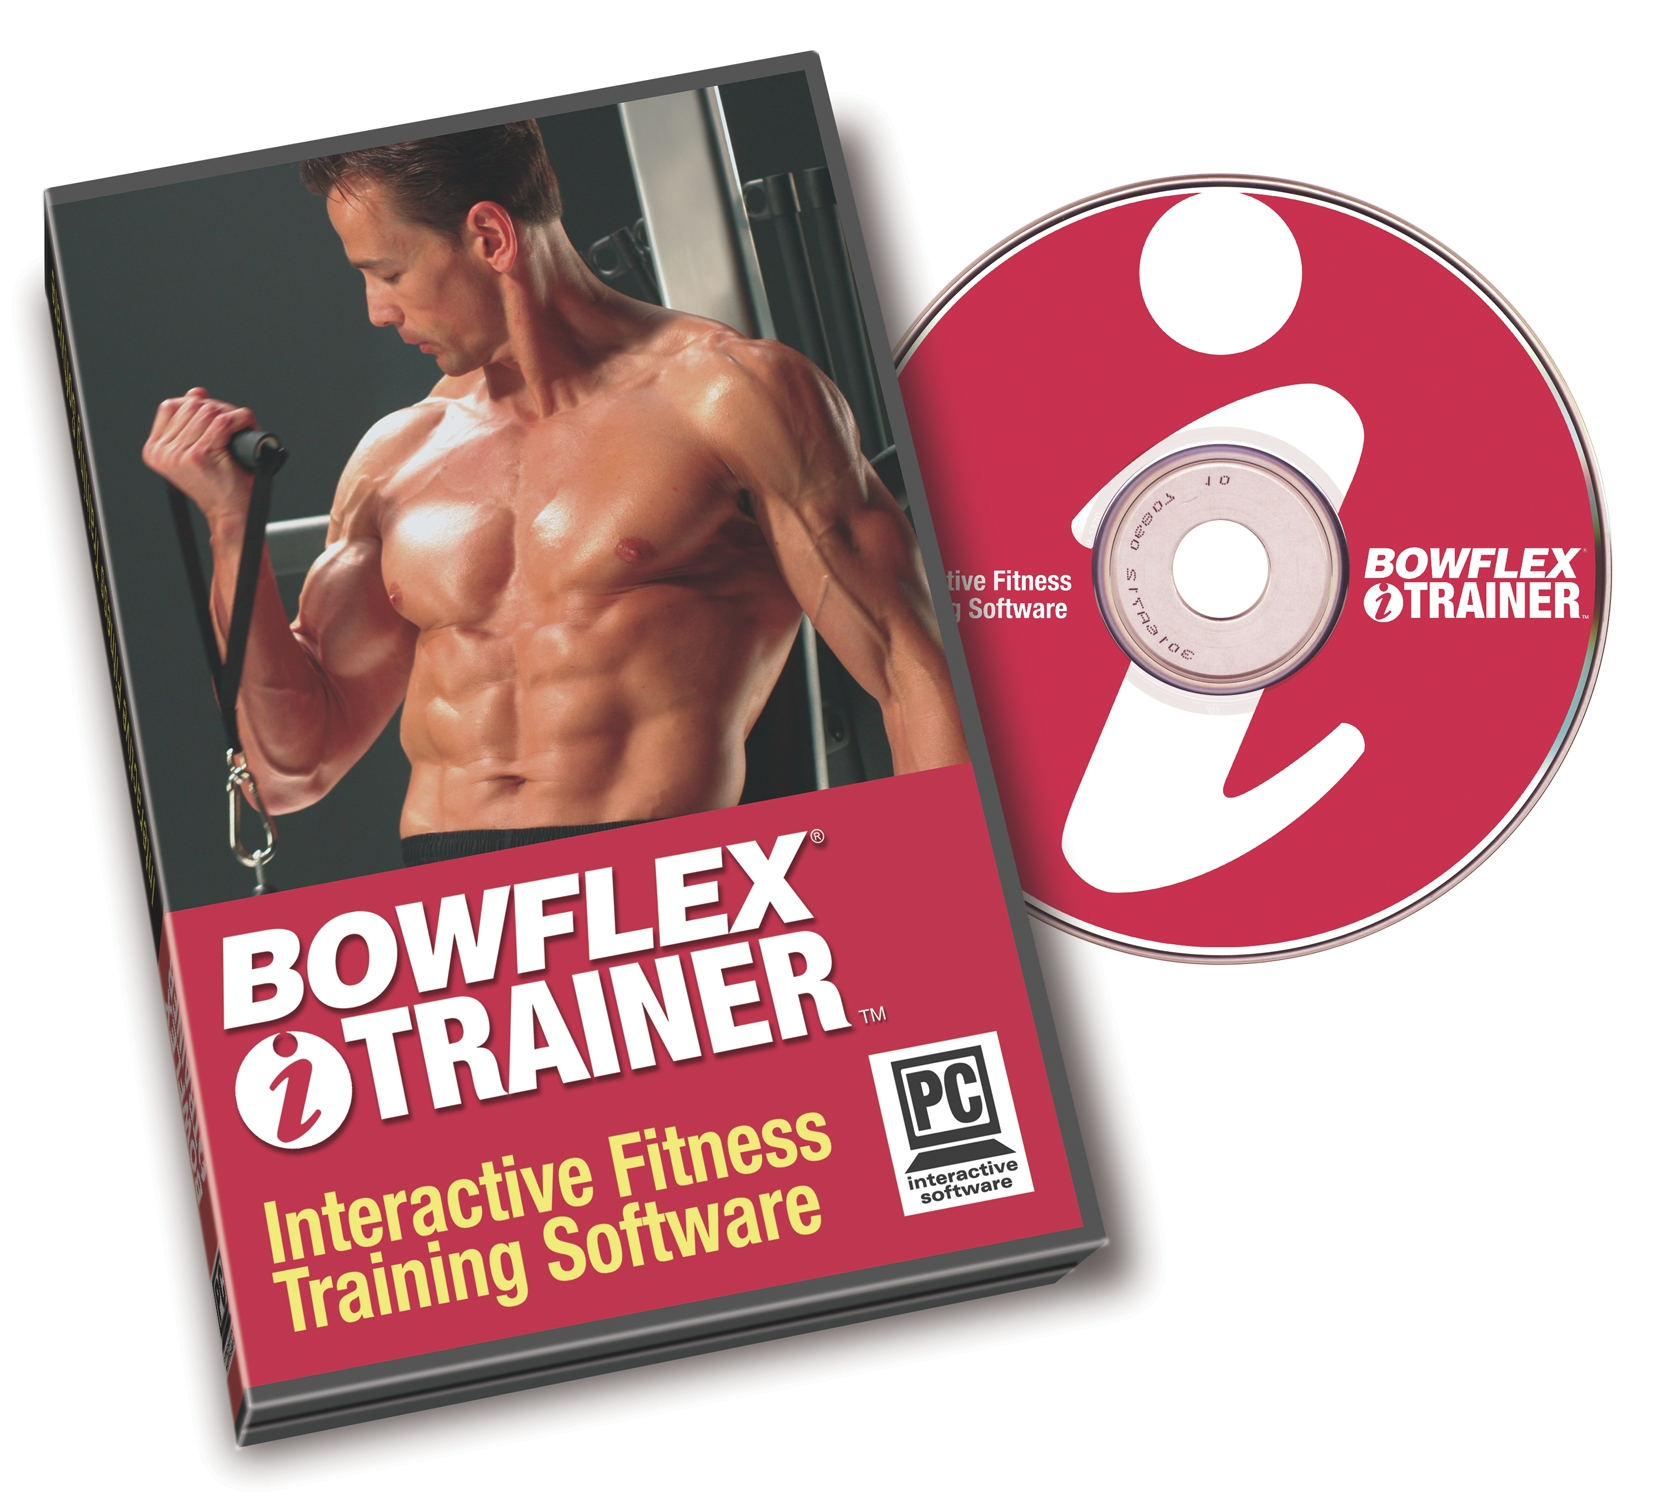 Bowflex Revolution Xp Price: Bowflex I-trainer Fitness Software